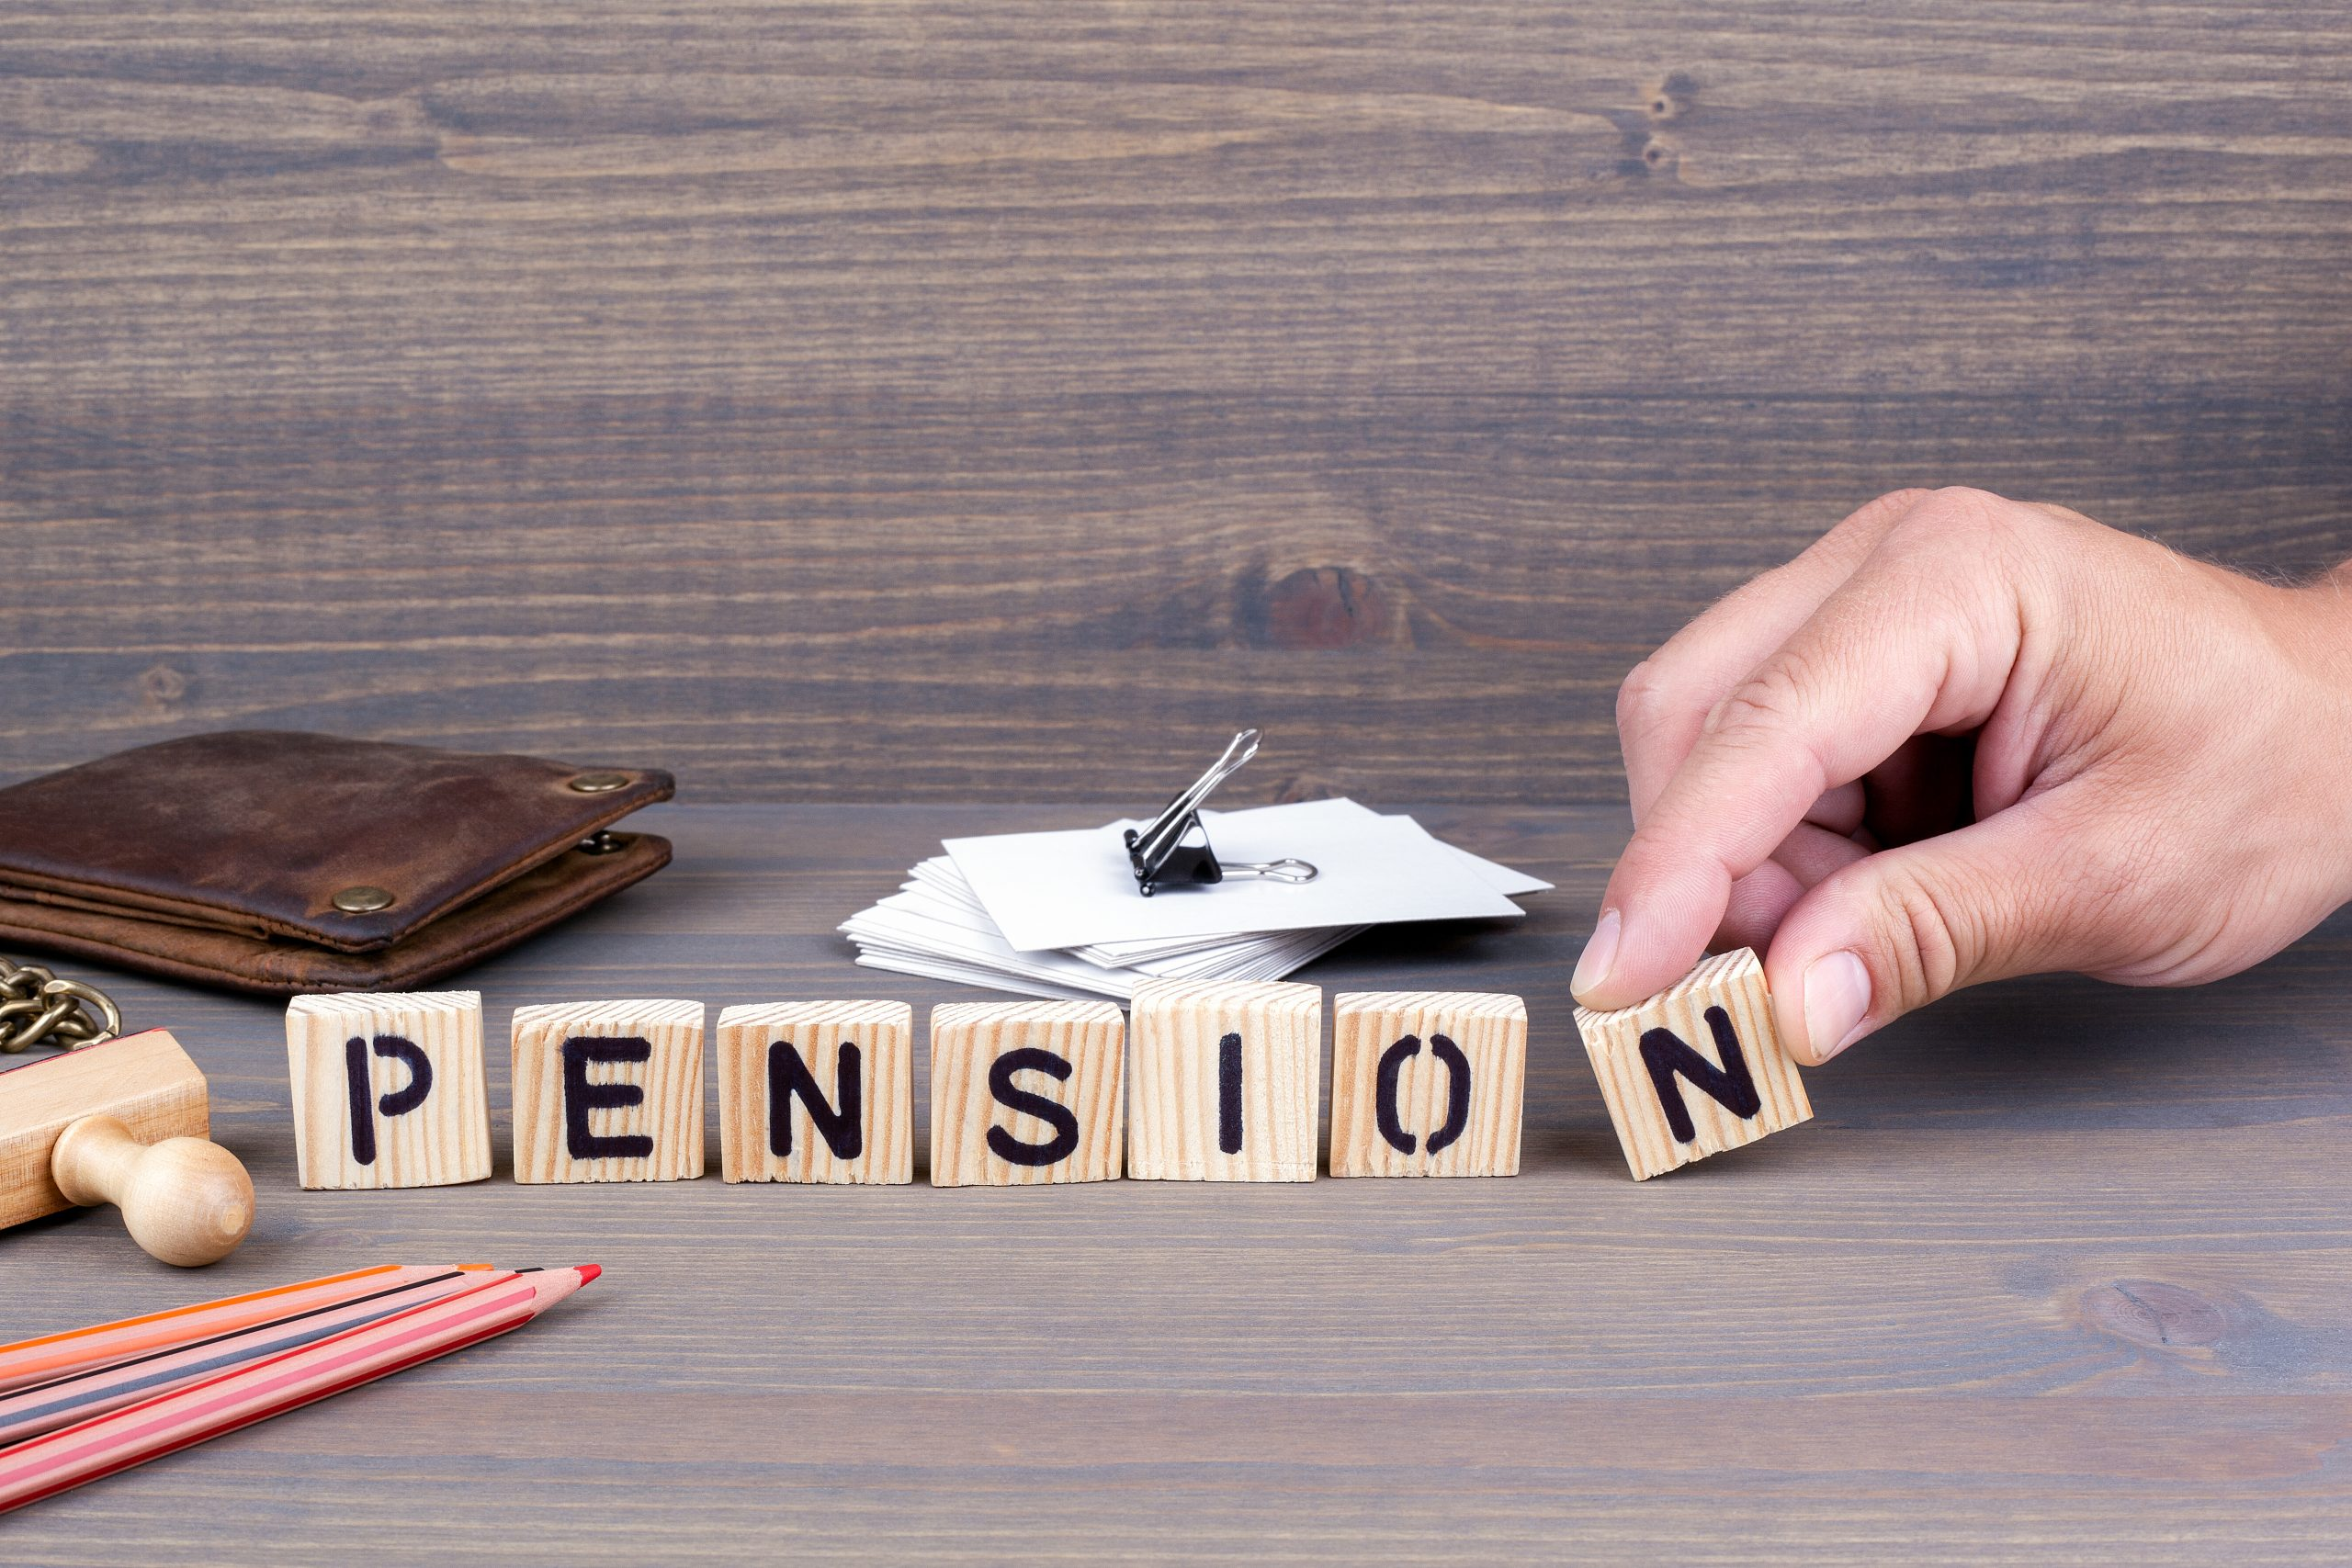 Pension text blocks